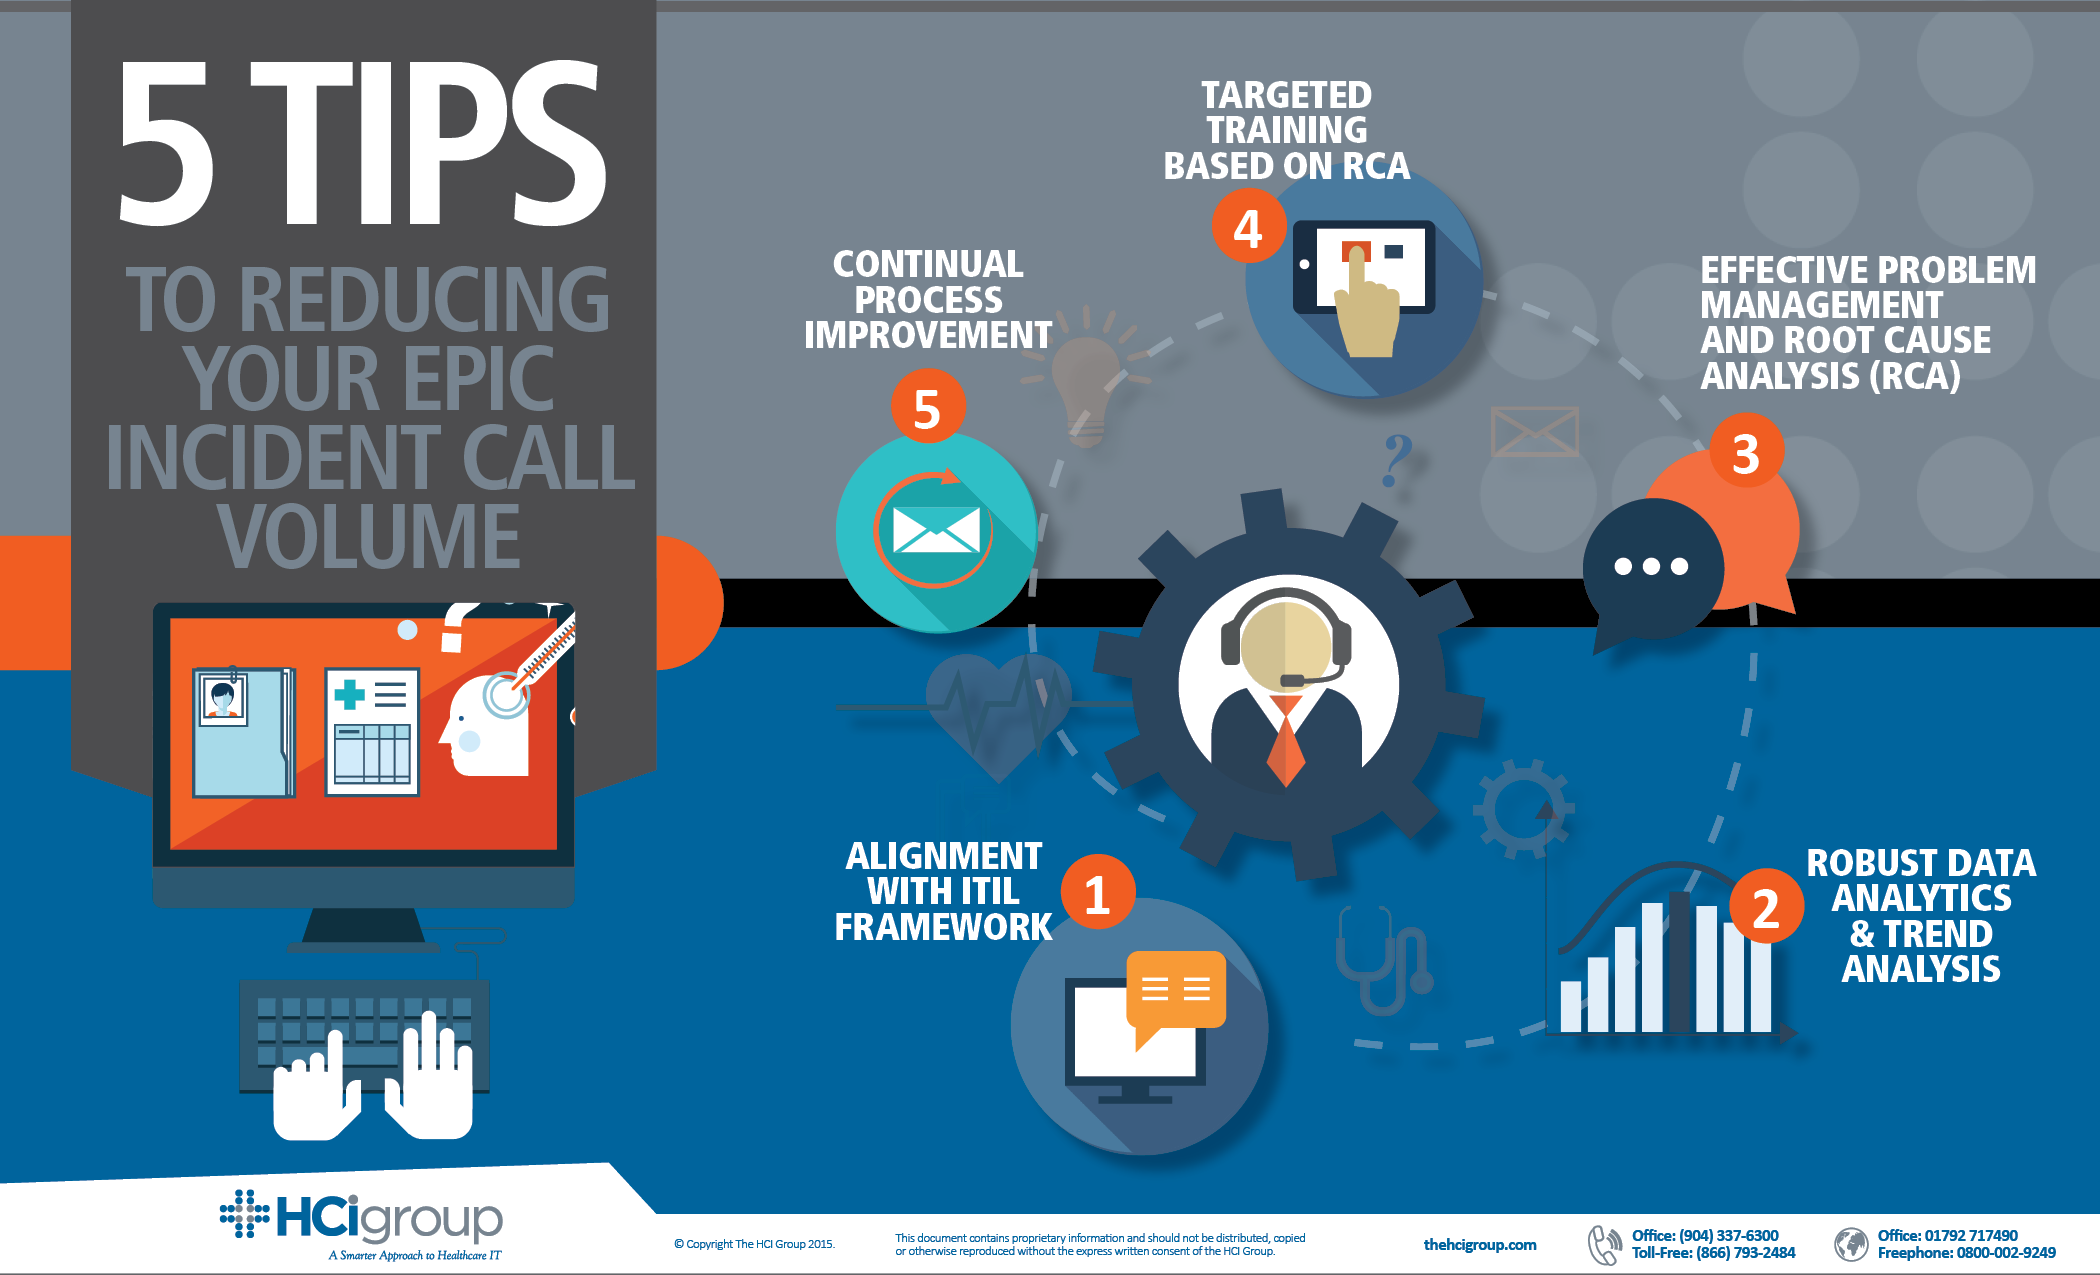 5 Tips to Reducing Epic Incident Call Volumes - Infographic